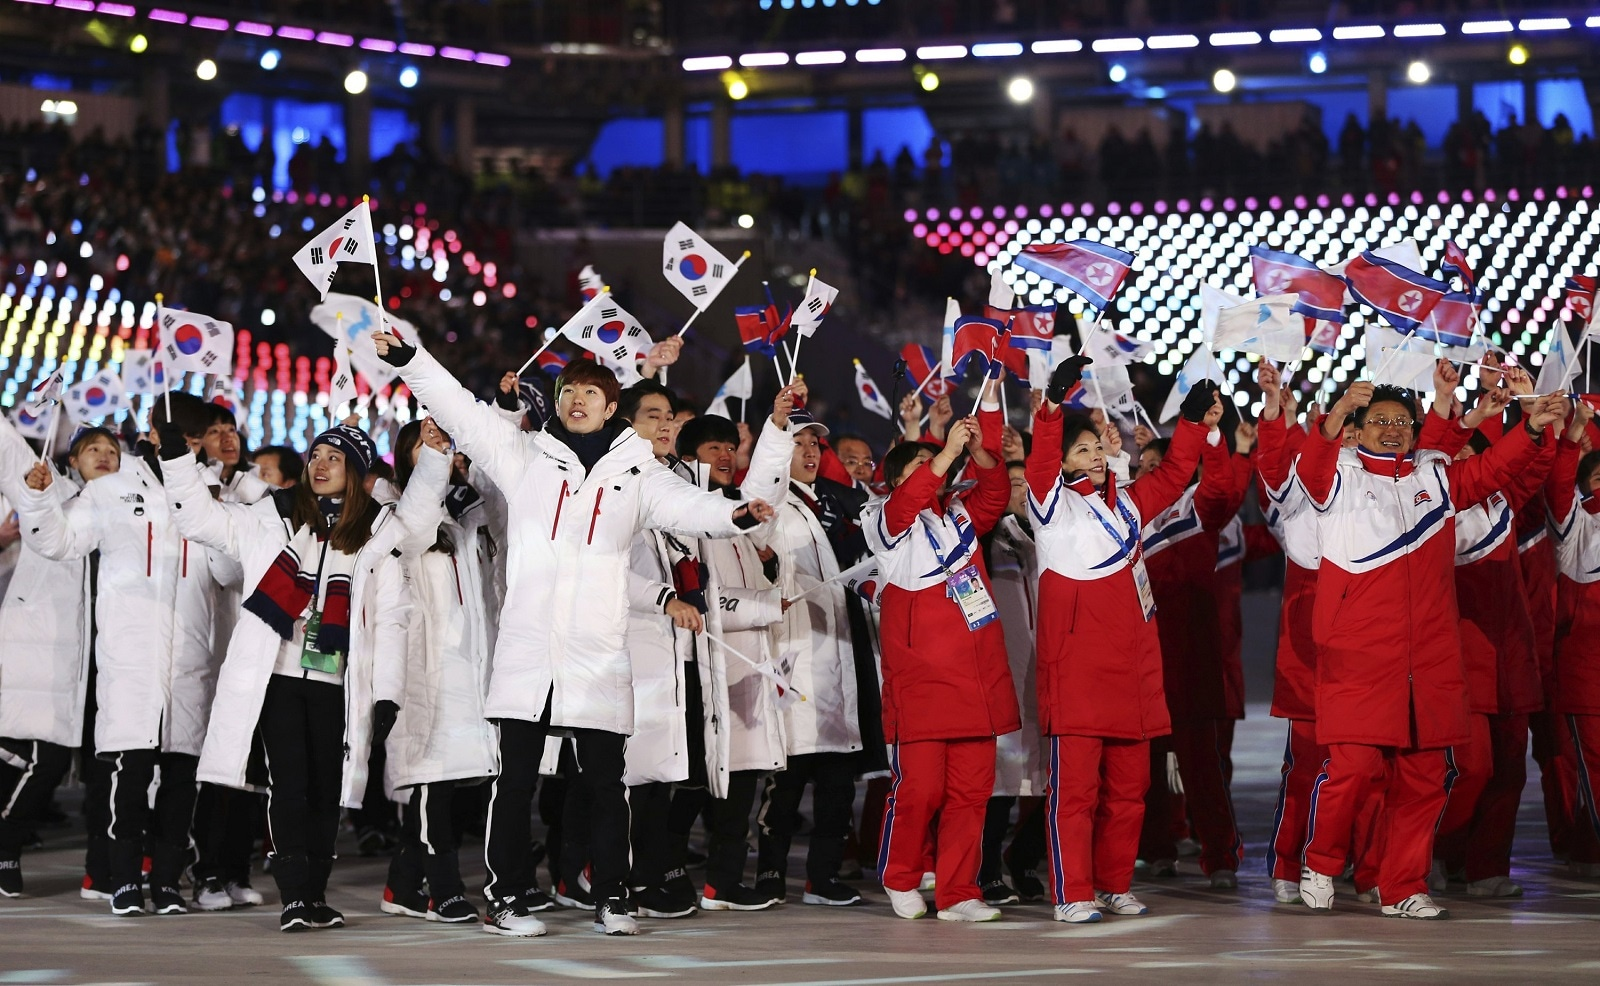 North and South Koreans wave flags together during the closing ceremony of the 2018 Winter Olympics in Pyeongchang, South Korea, on February 25, 2018. (AP Photo/Natacha Pisarenko)